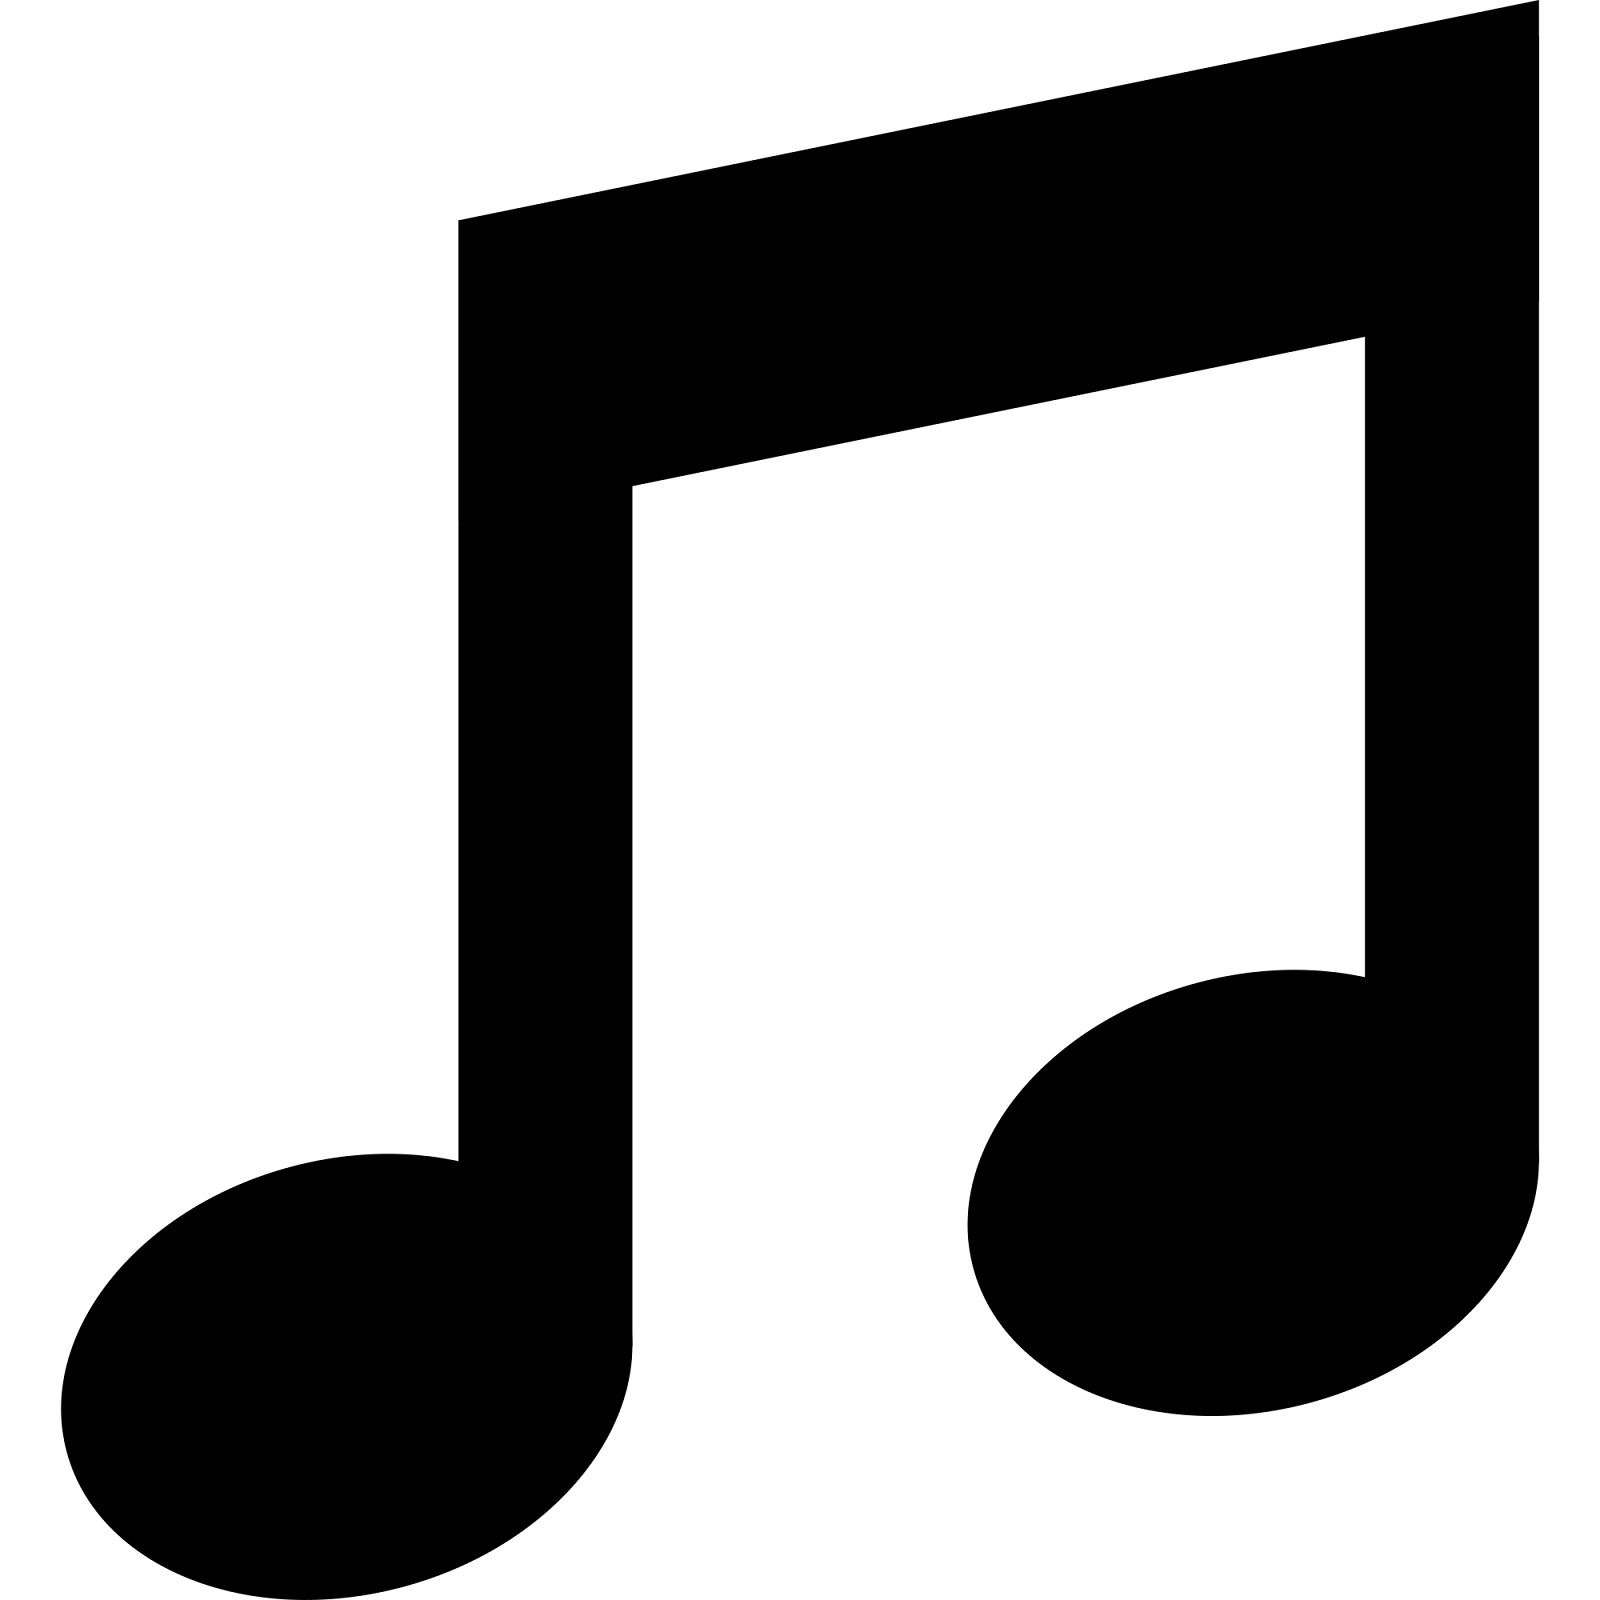 File:Music note.png - Wikimedia Commons